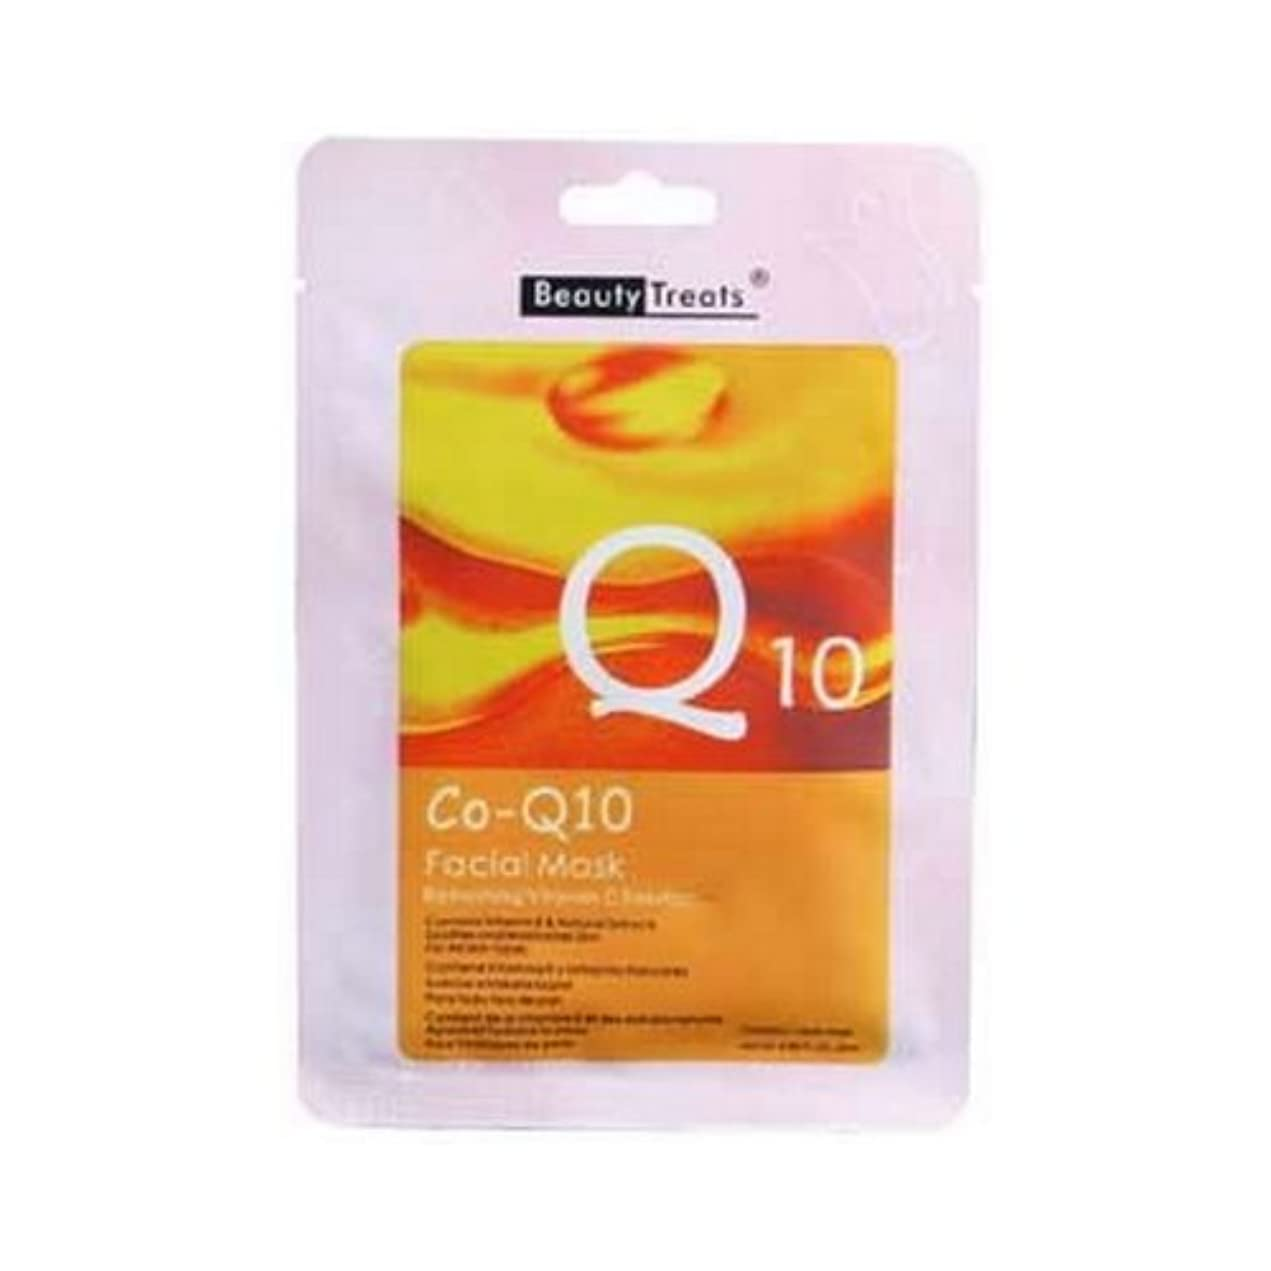 維持する技術的な誰も(3 Pack) BEAUTY TREATS Facial Mask Refreshing Vitamin C Solution - Co-Q10 (並行輸入品)